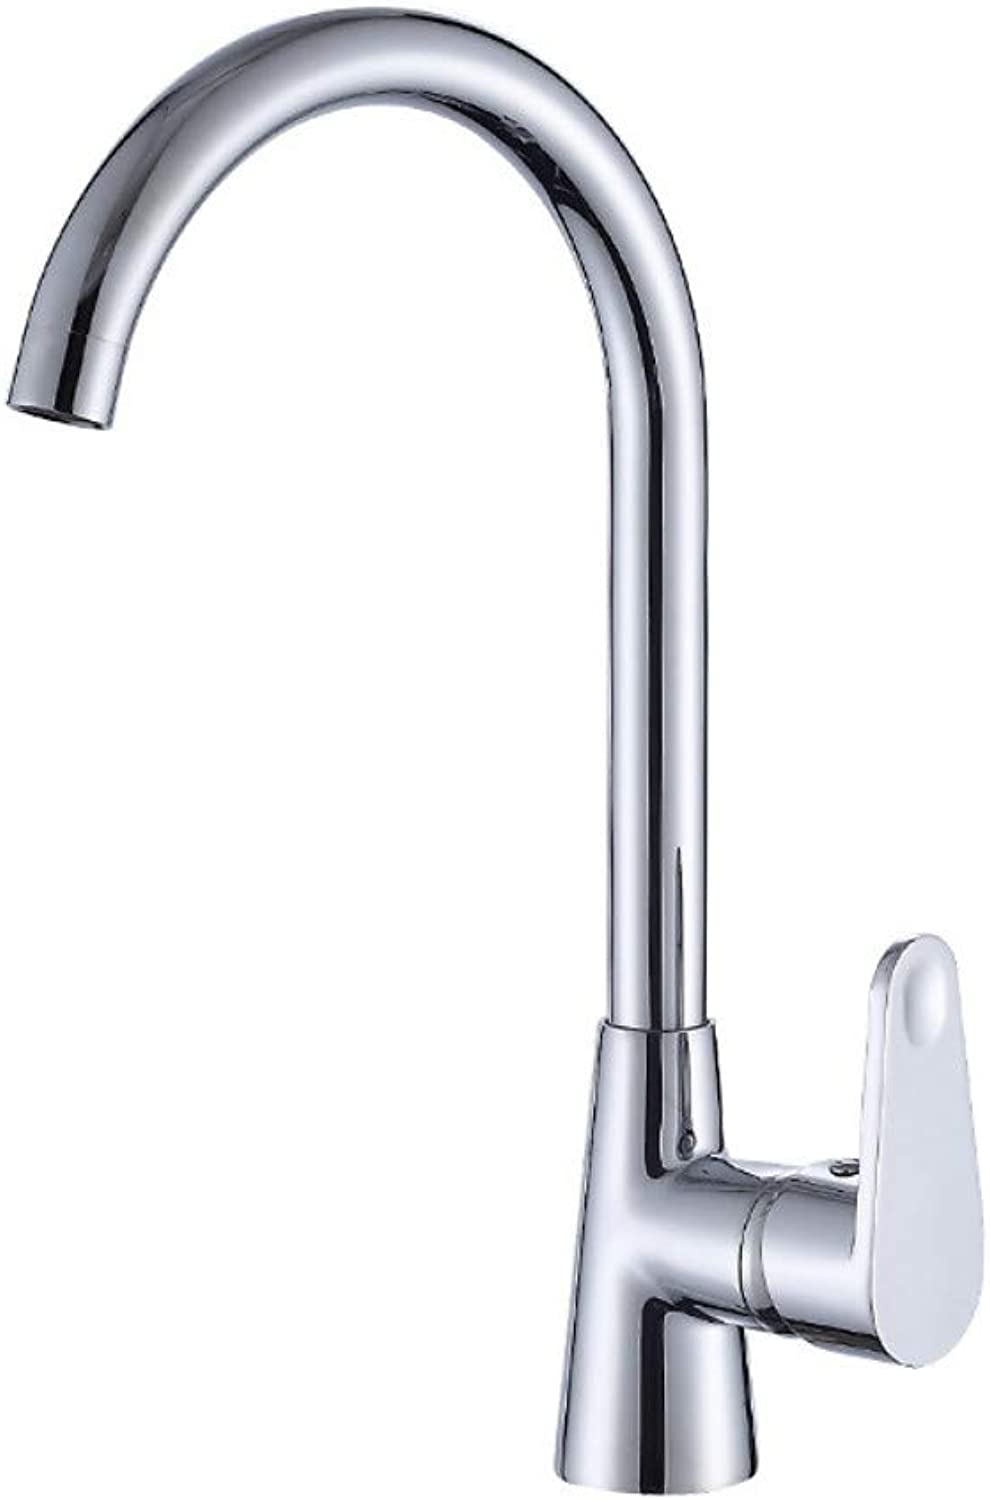 Copper Kitchen Faucet Sink Faucet Hot and Cold Mixing Valve 360? redating Faucet